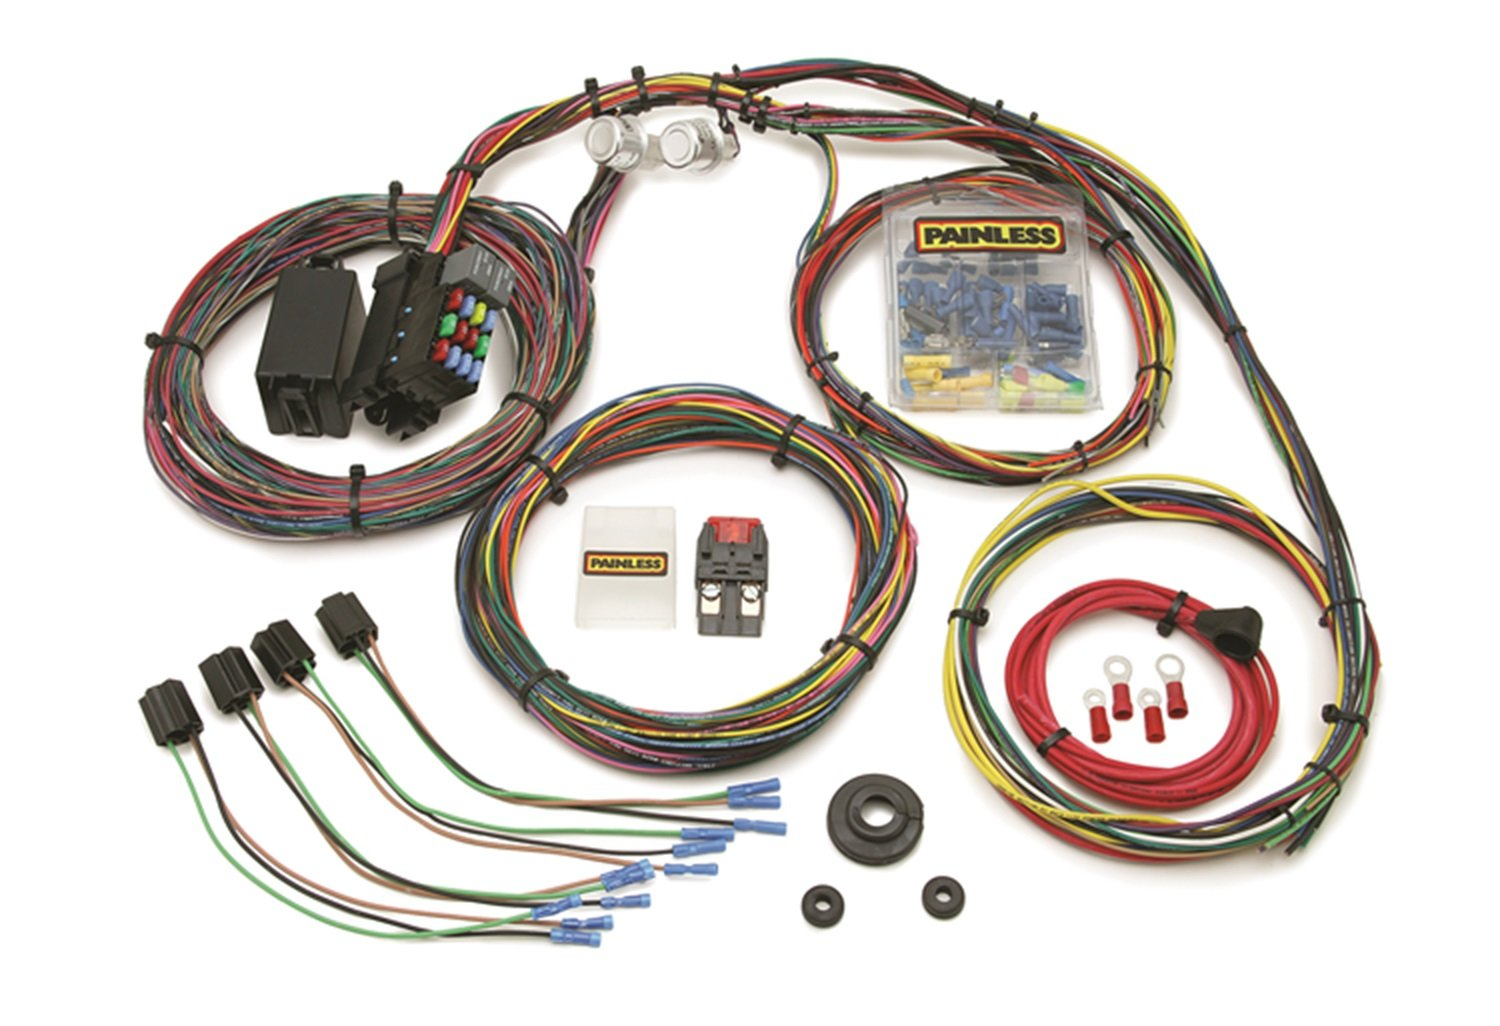 71gWOH5D5zL._SL1500_ amazon com painless 10127 automotive painless wiring harness rebate at sewacar.co